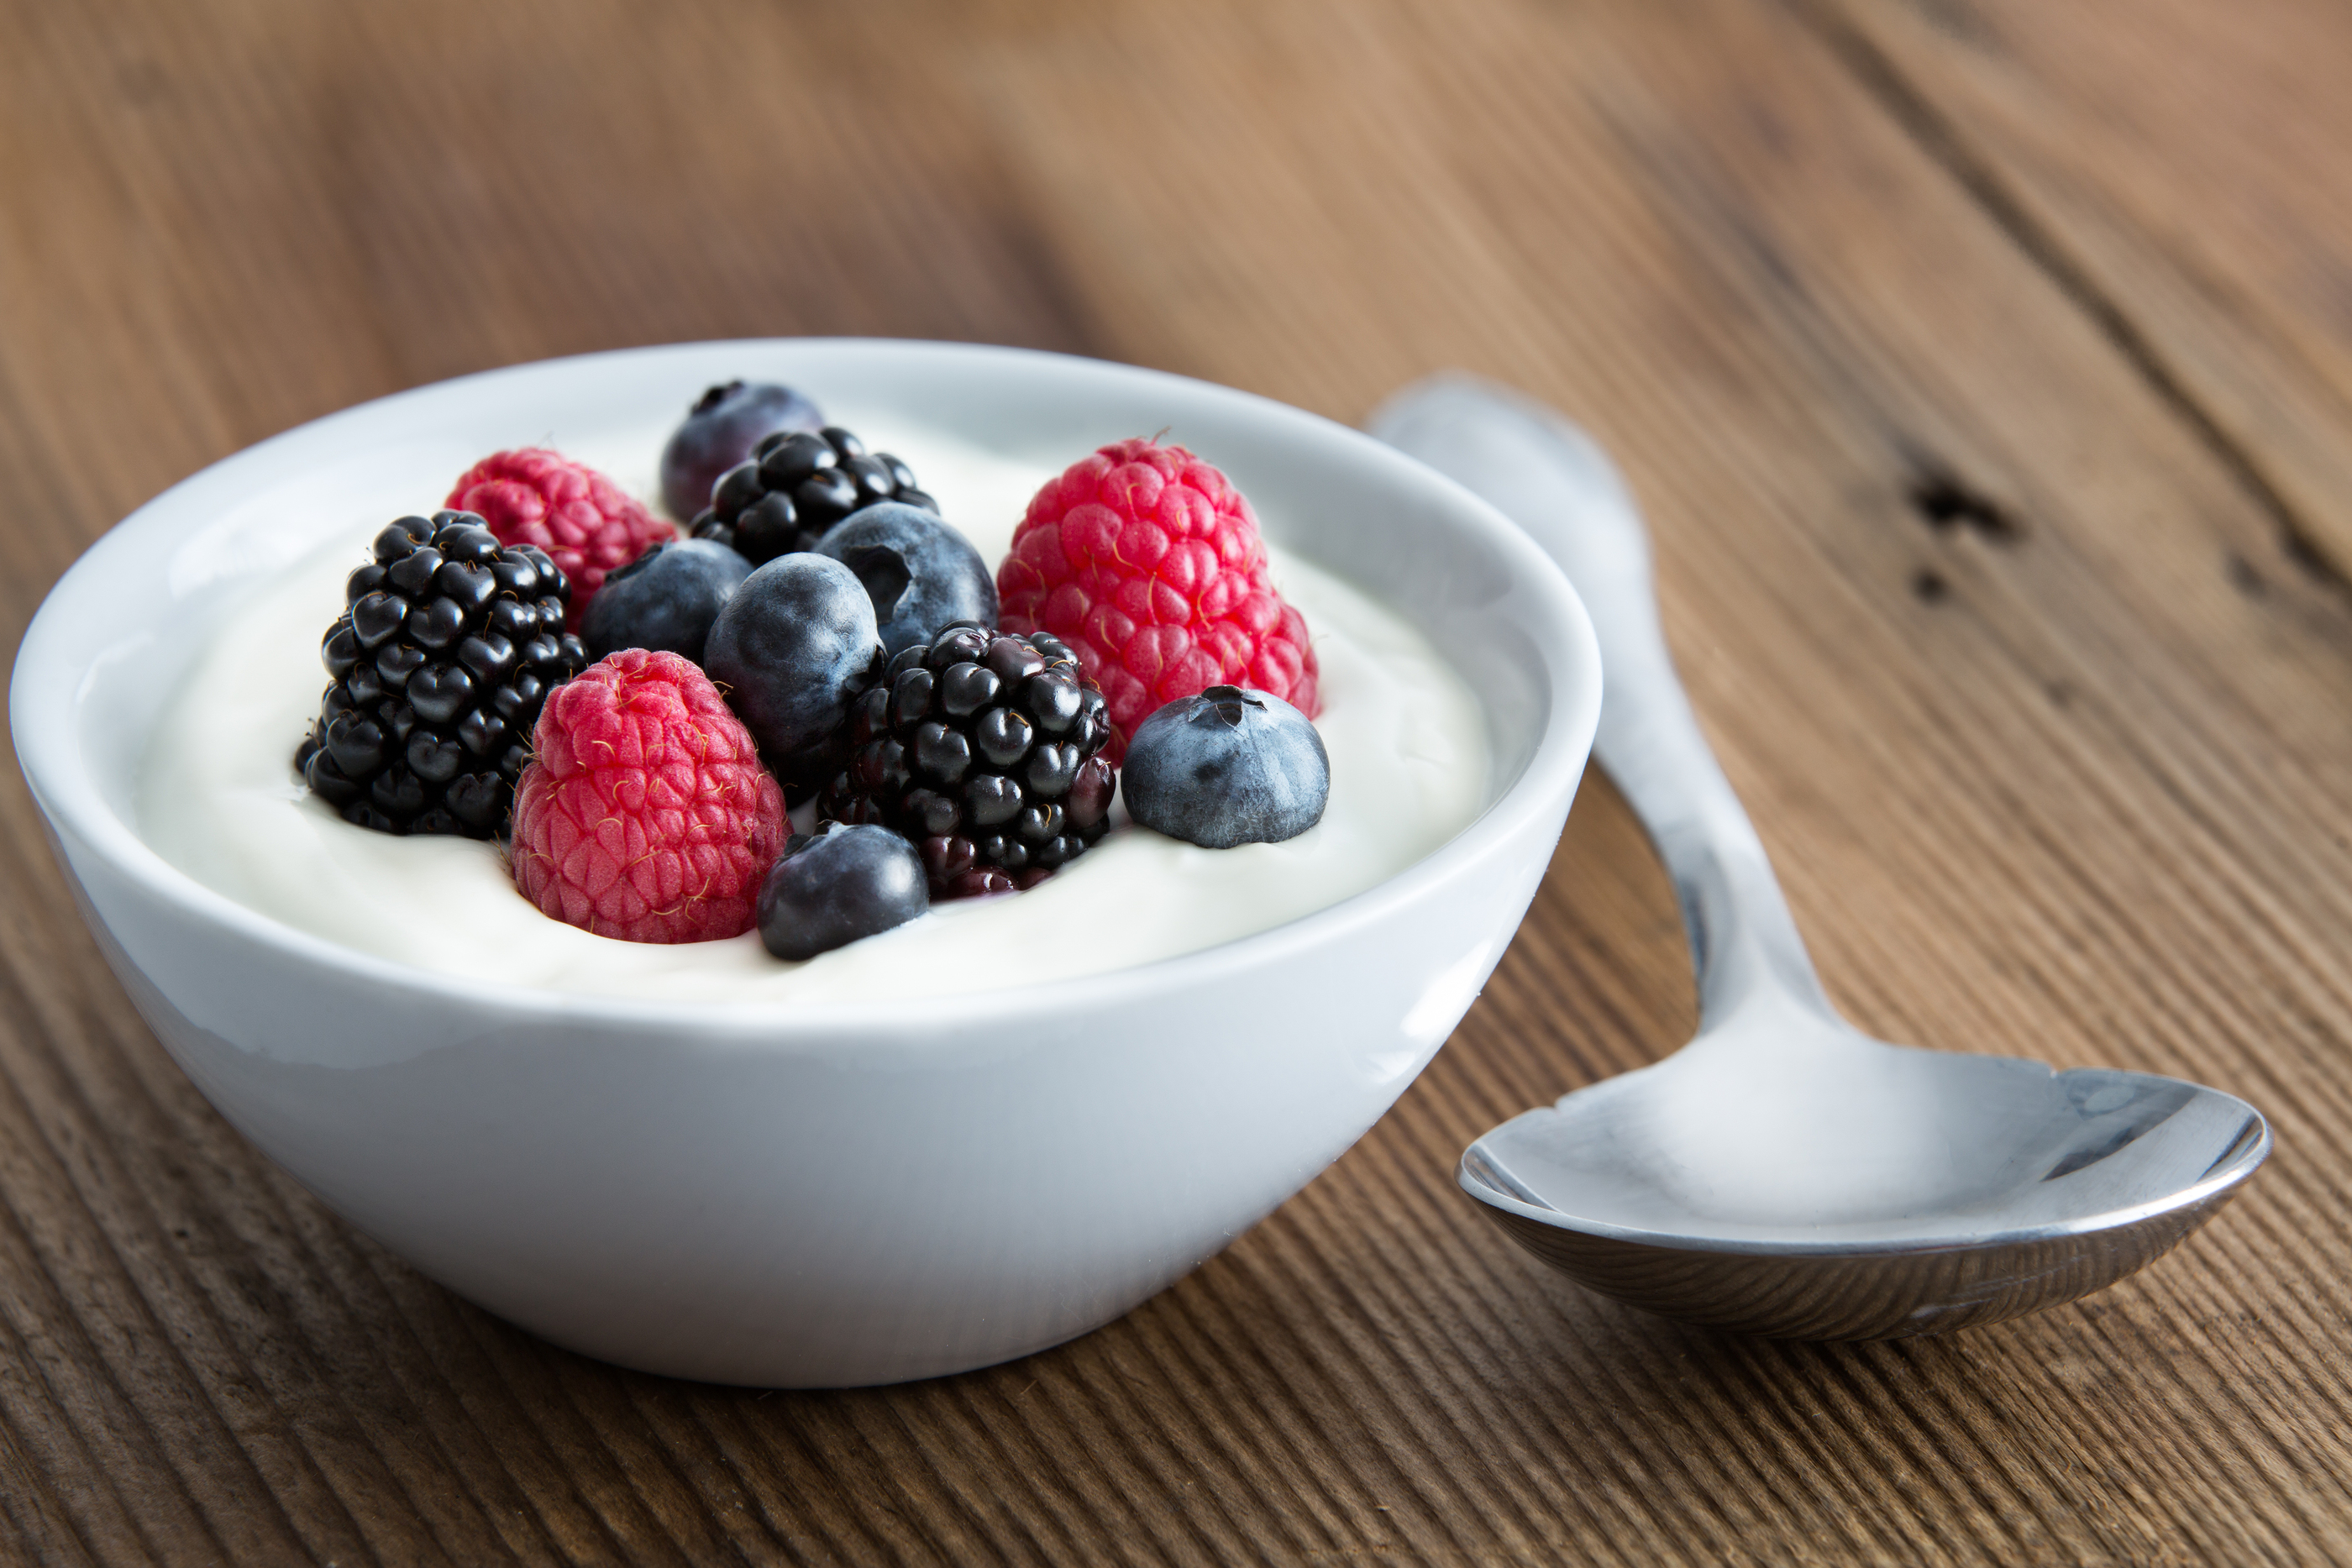 bigstock-Bowl-Of-Fresh-Mixed-Berries-And-yogurt-58971671.jpg